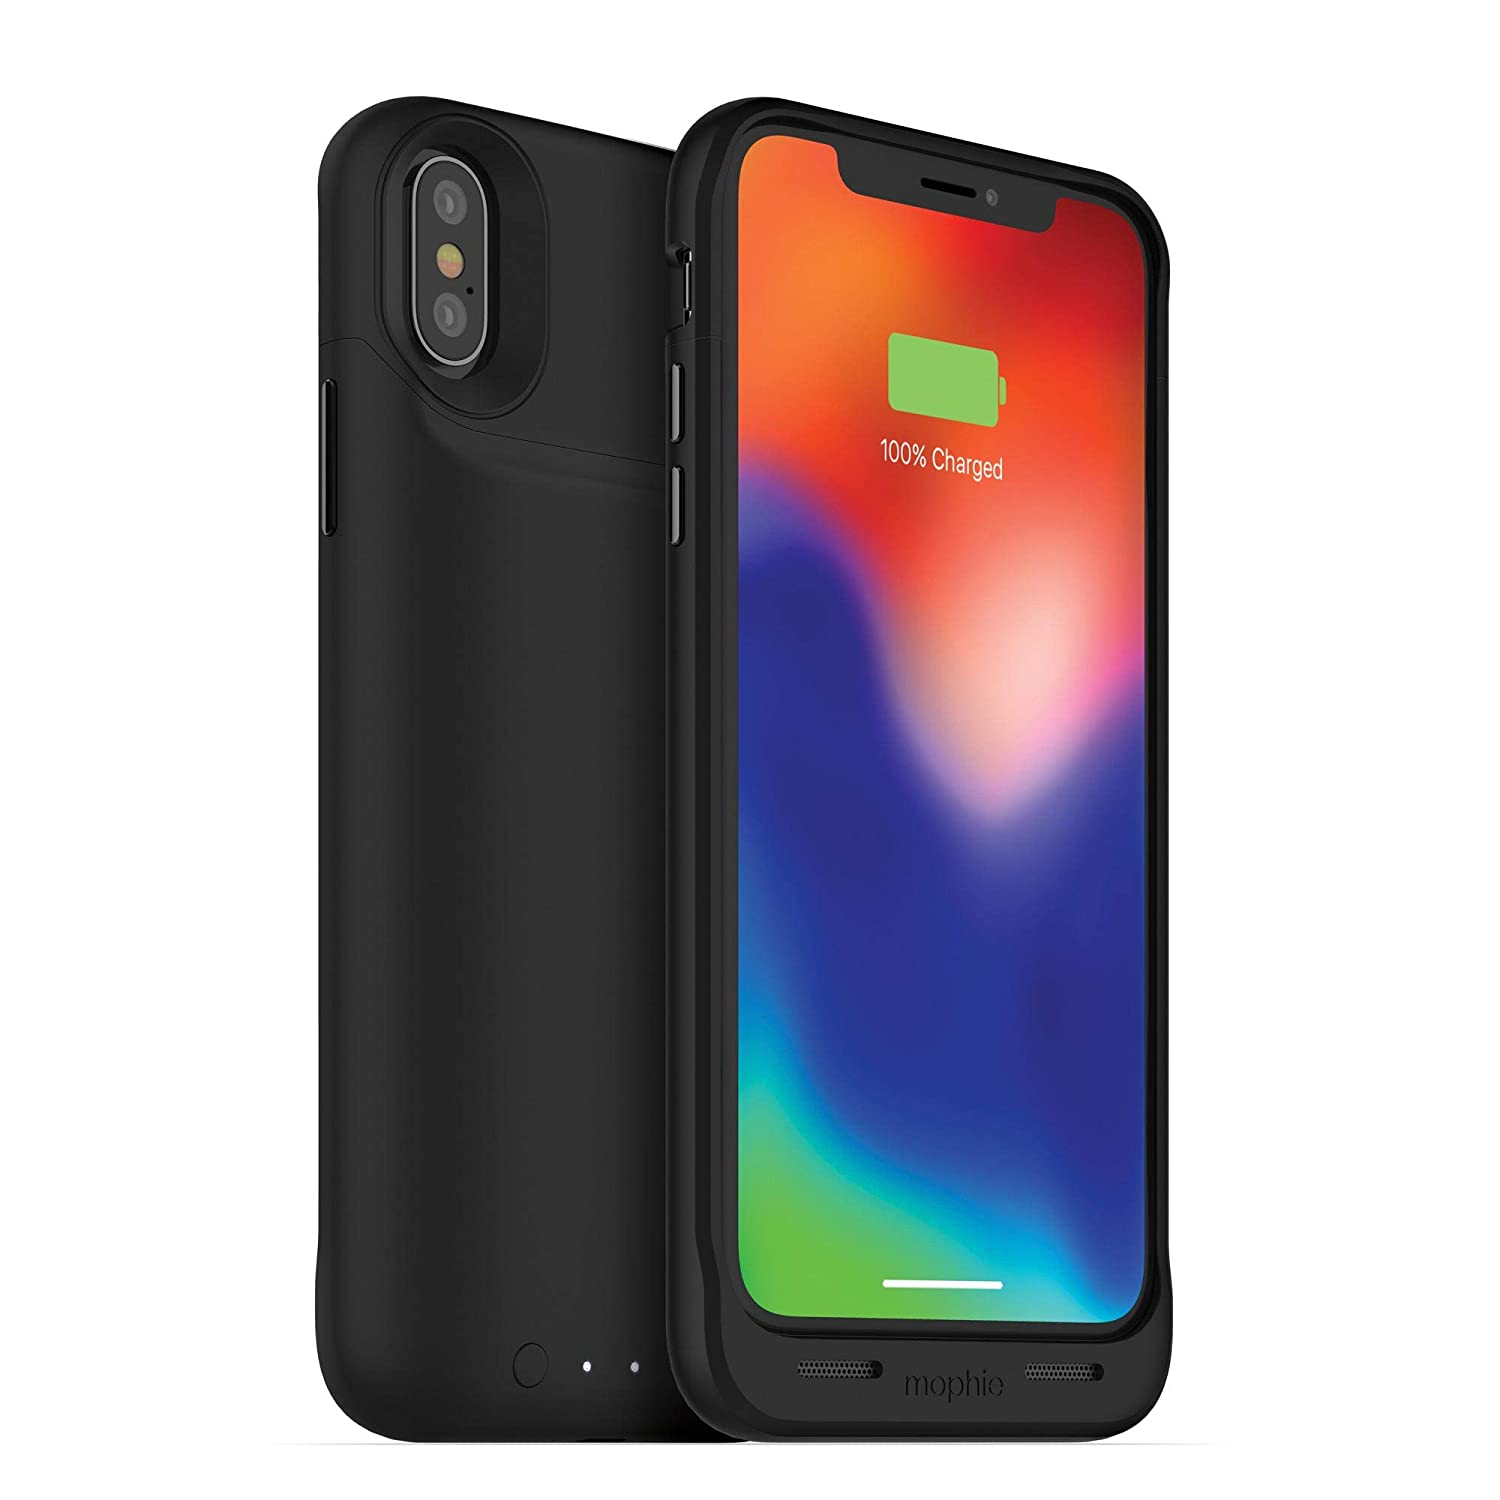 outlet store 5adfc 54c31 mophie Juice Pack Air - Wireless Charging - Protective Battery Case - Made  For Apple iPhone X - Black